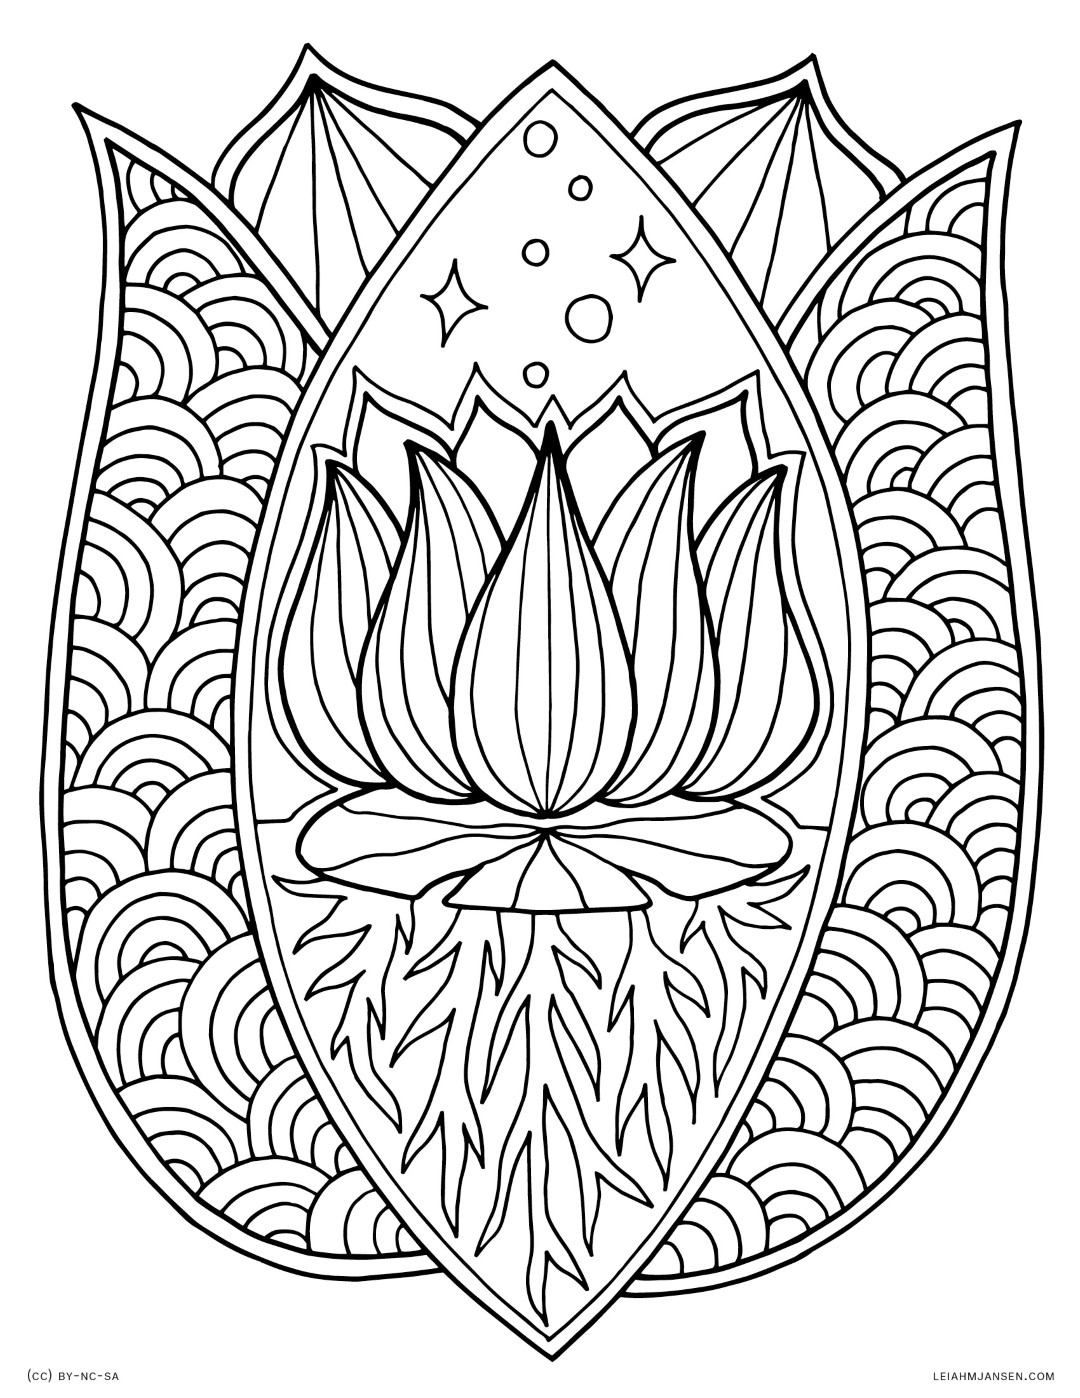 Zen Lotus Flower Coloring Page for Adults